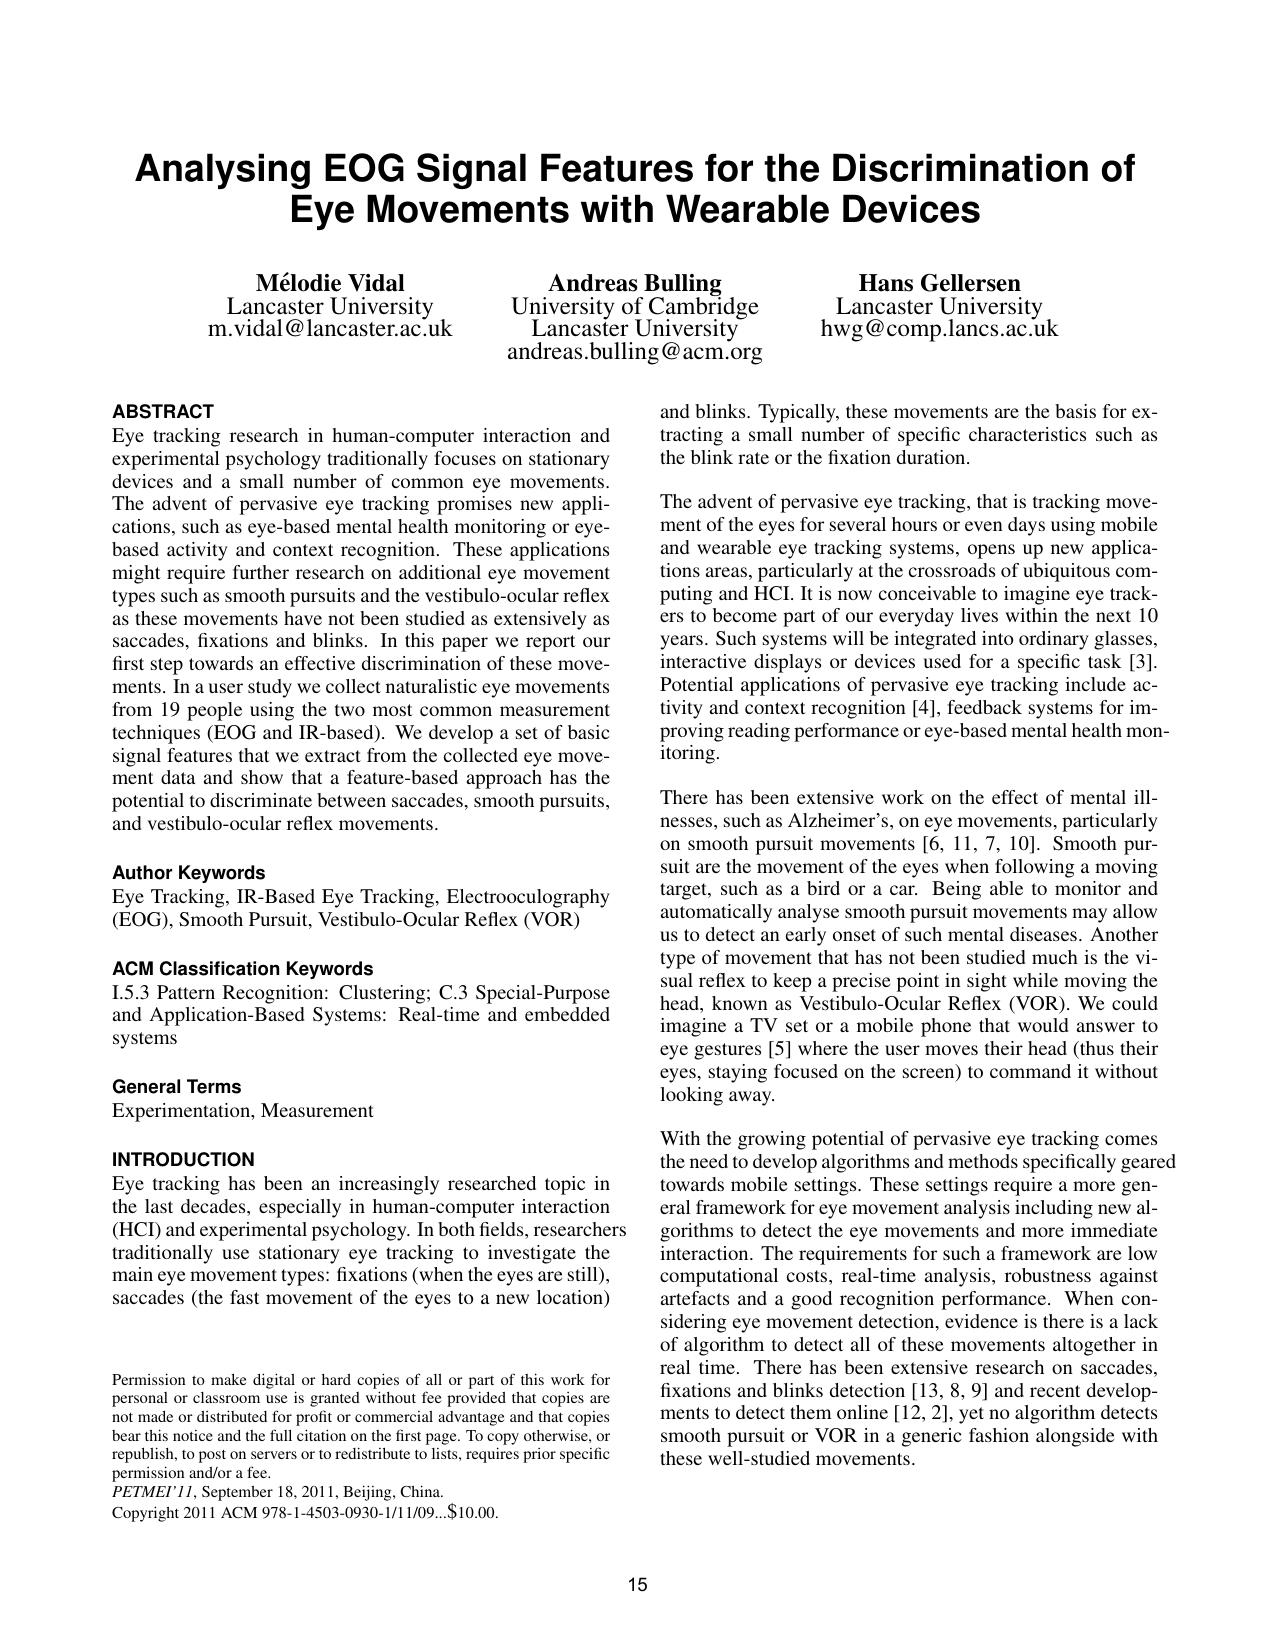 Analysing EOG Signal Features for the Discrimination of Eye Movements with Wearable Devices